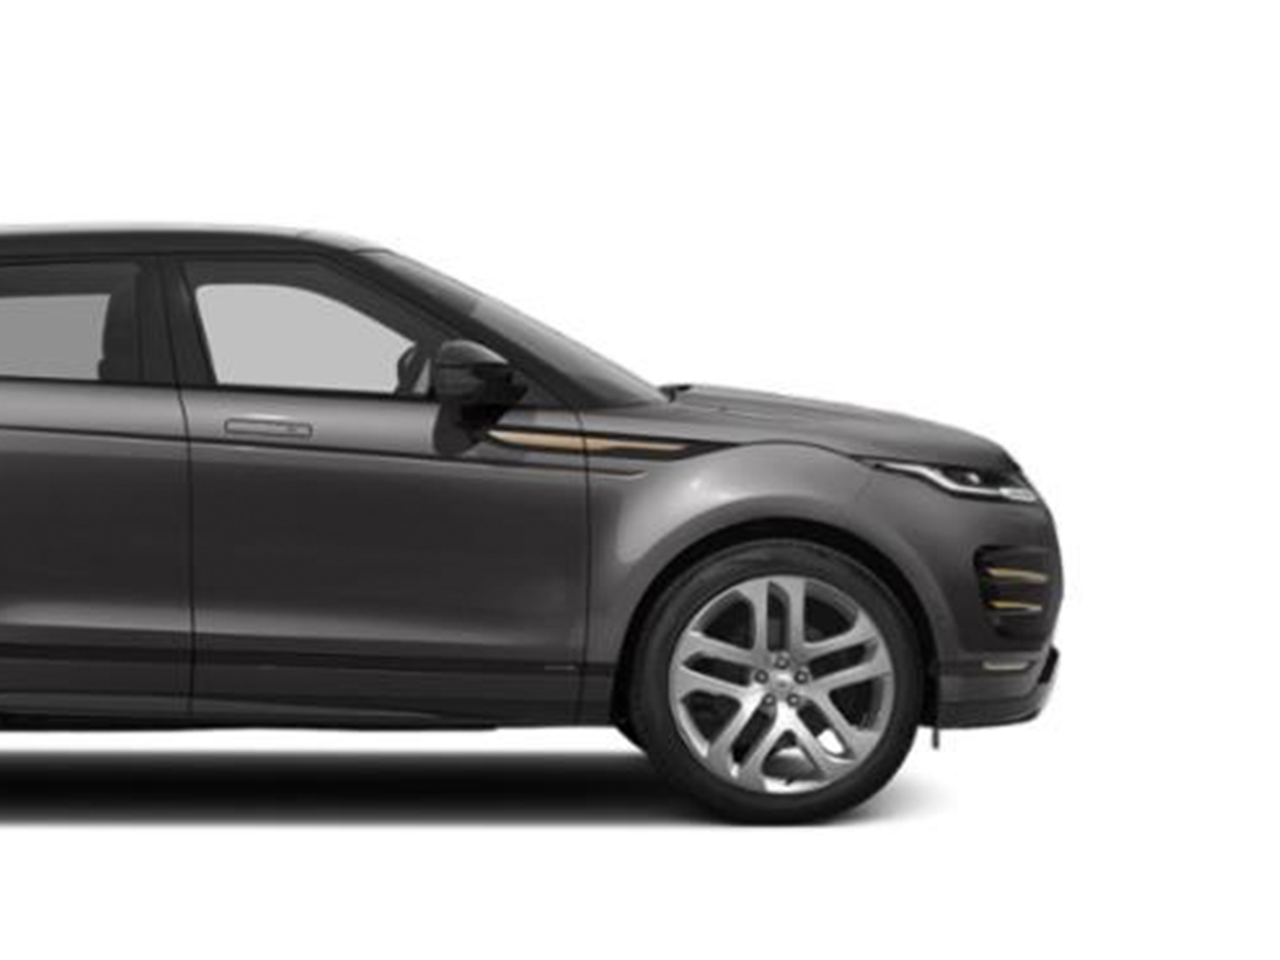 Range Rover Evoque car for hire